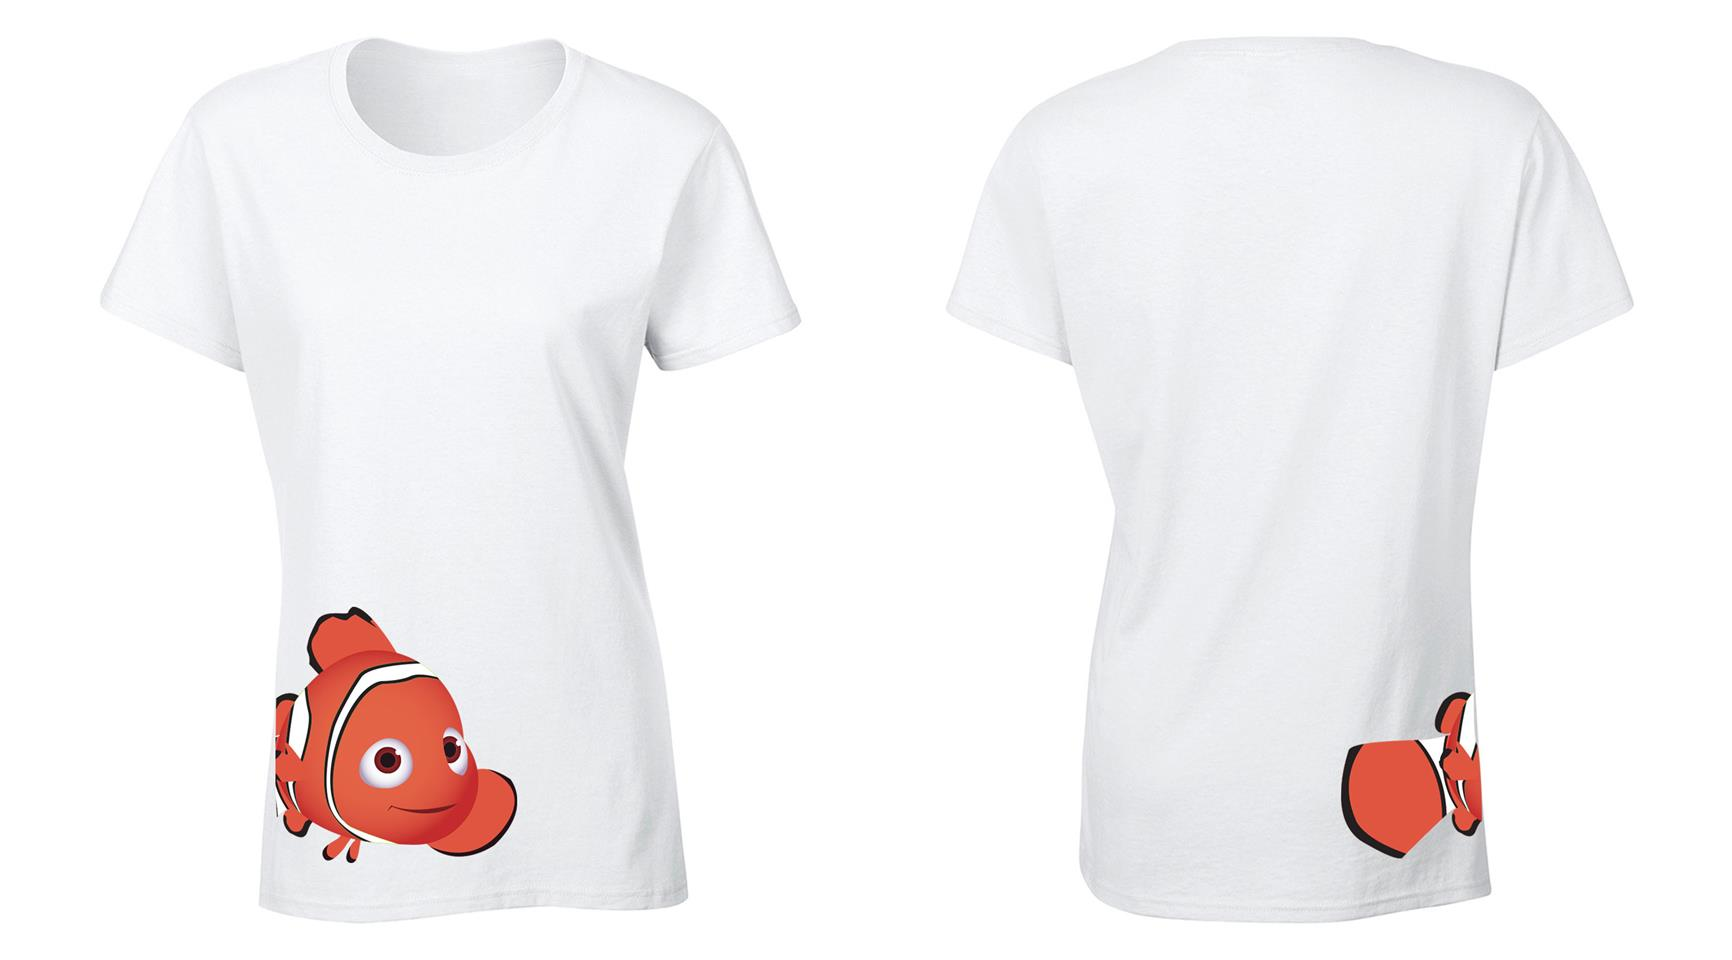 OS547F Finding Dory Female T-shirt